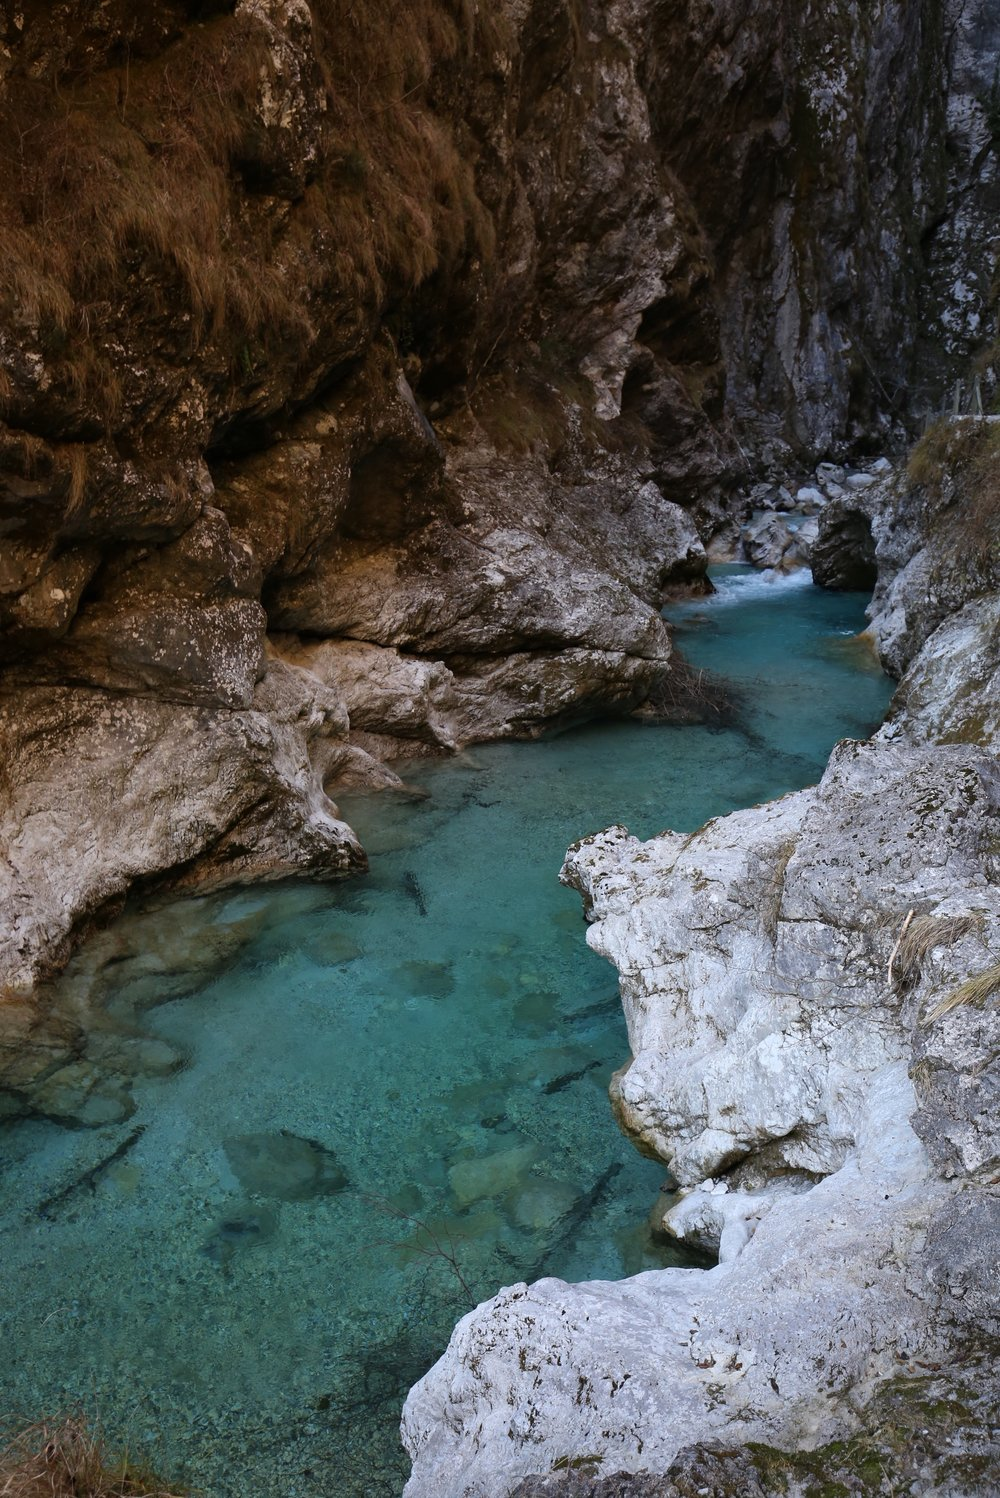 An amazing blue river in the canyons of Slovenia.